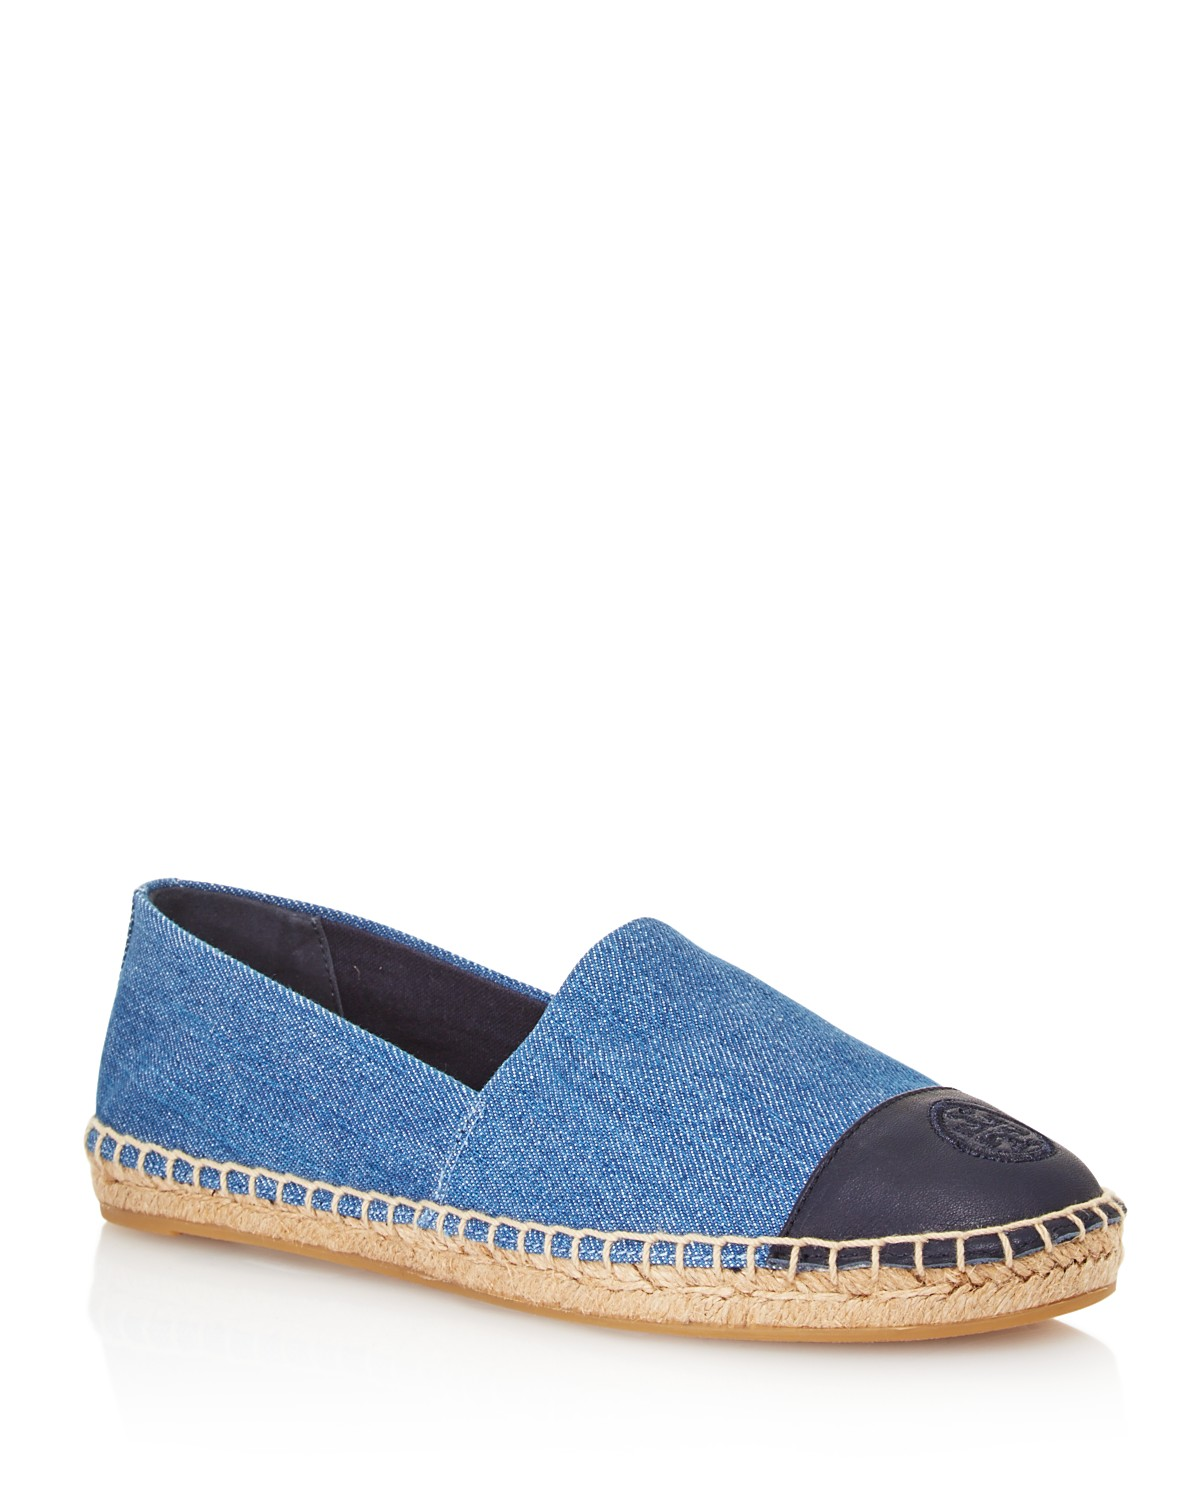 Tory Burch Women's Denim Color-Block Cap Toe Espadrilles Discount Hot Sale New Arrival Online Outlet Deals Perfect Online p3eWft13oM